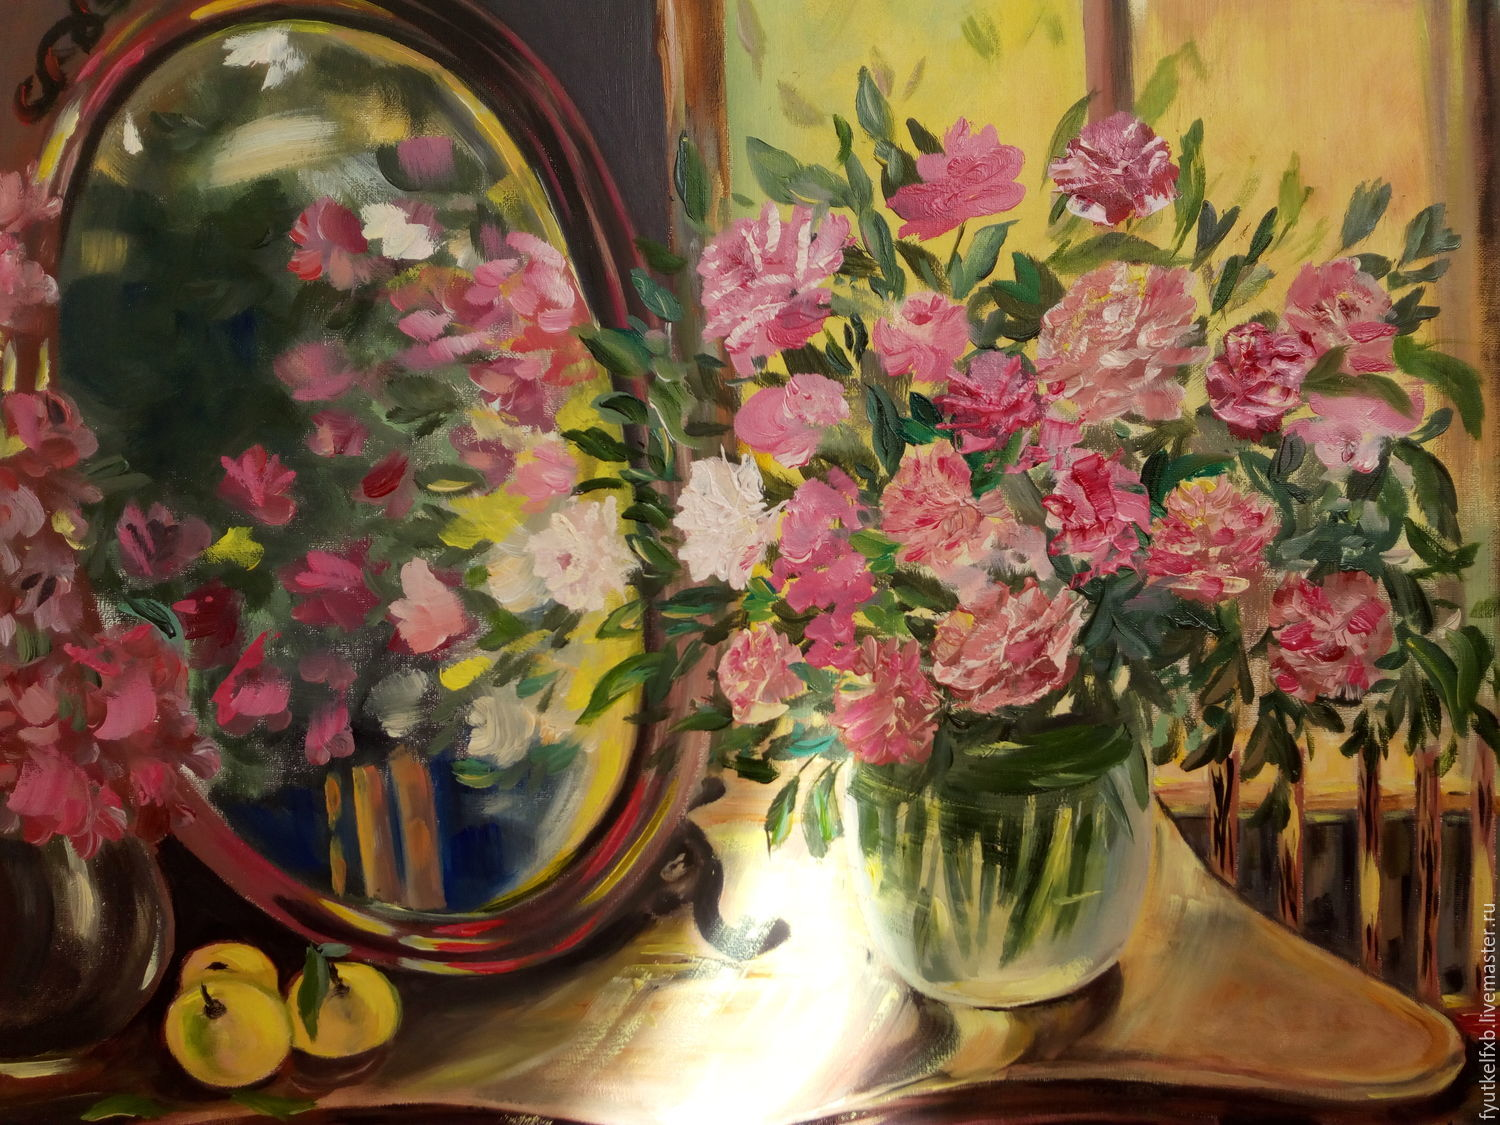 Painting with flowers ' Flowers in the mirror', Pictures, Moscow,  Фото №1